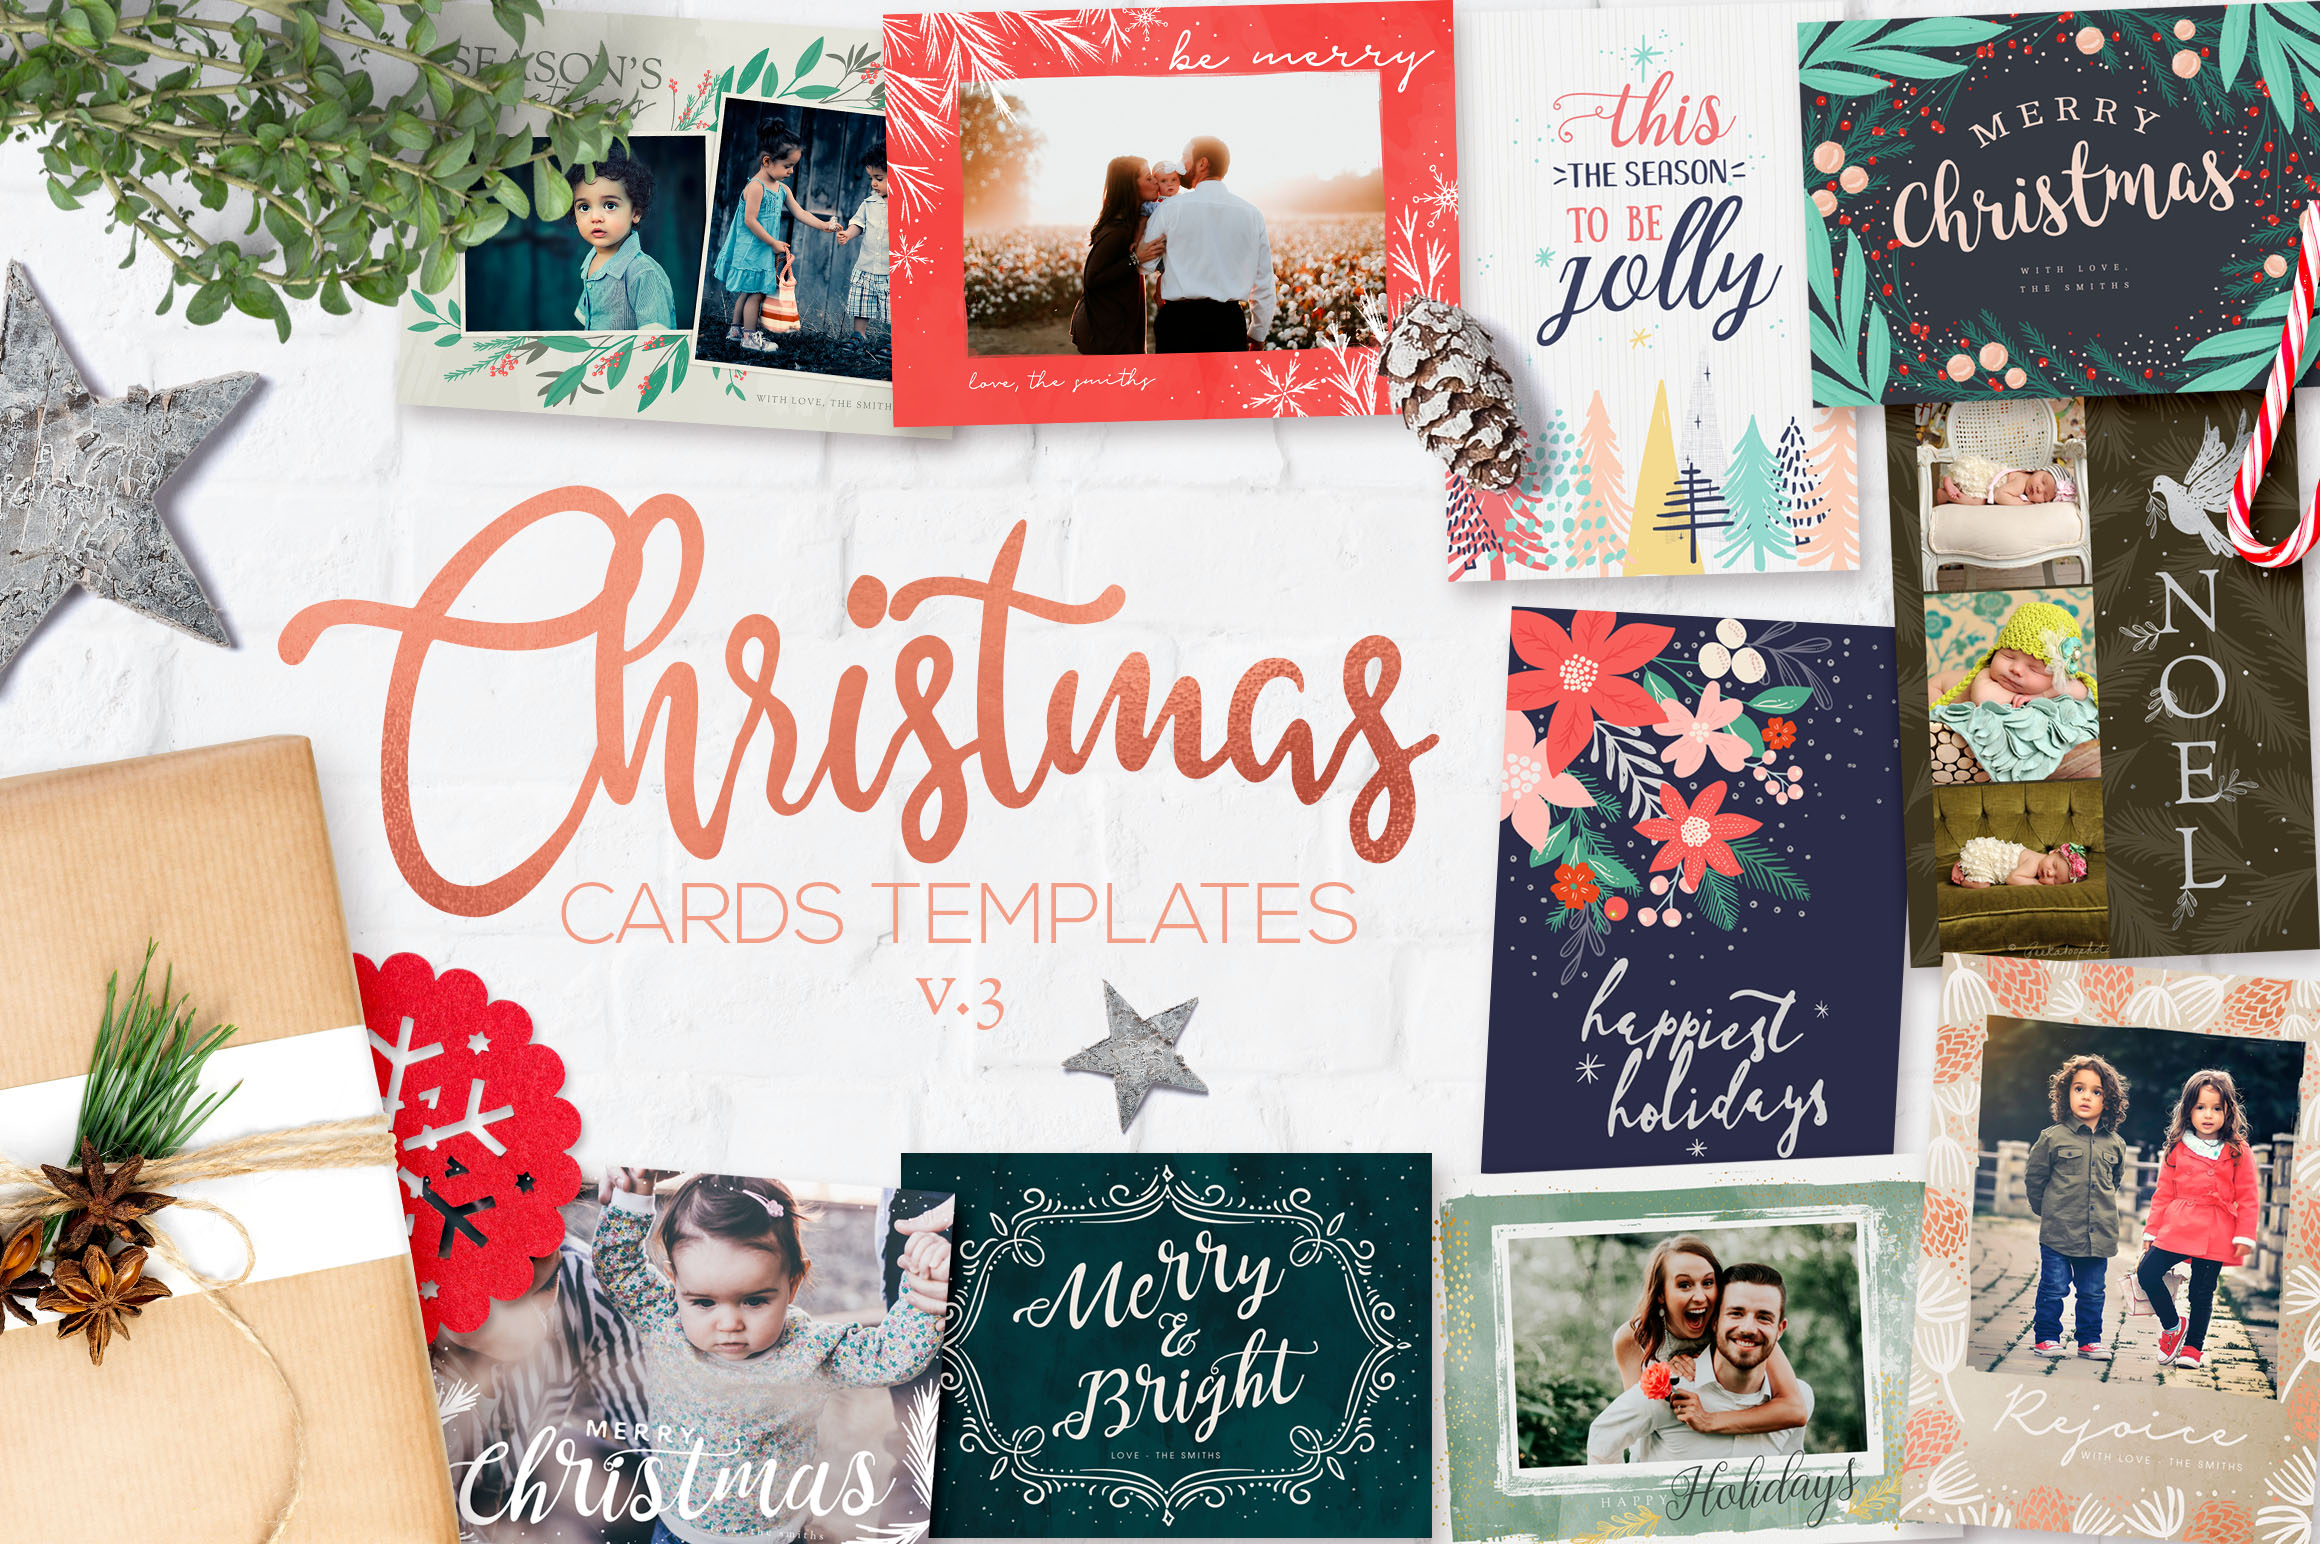 Christmas Card Templates v.3 example image 1